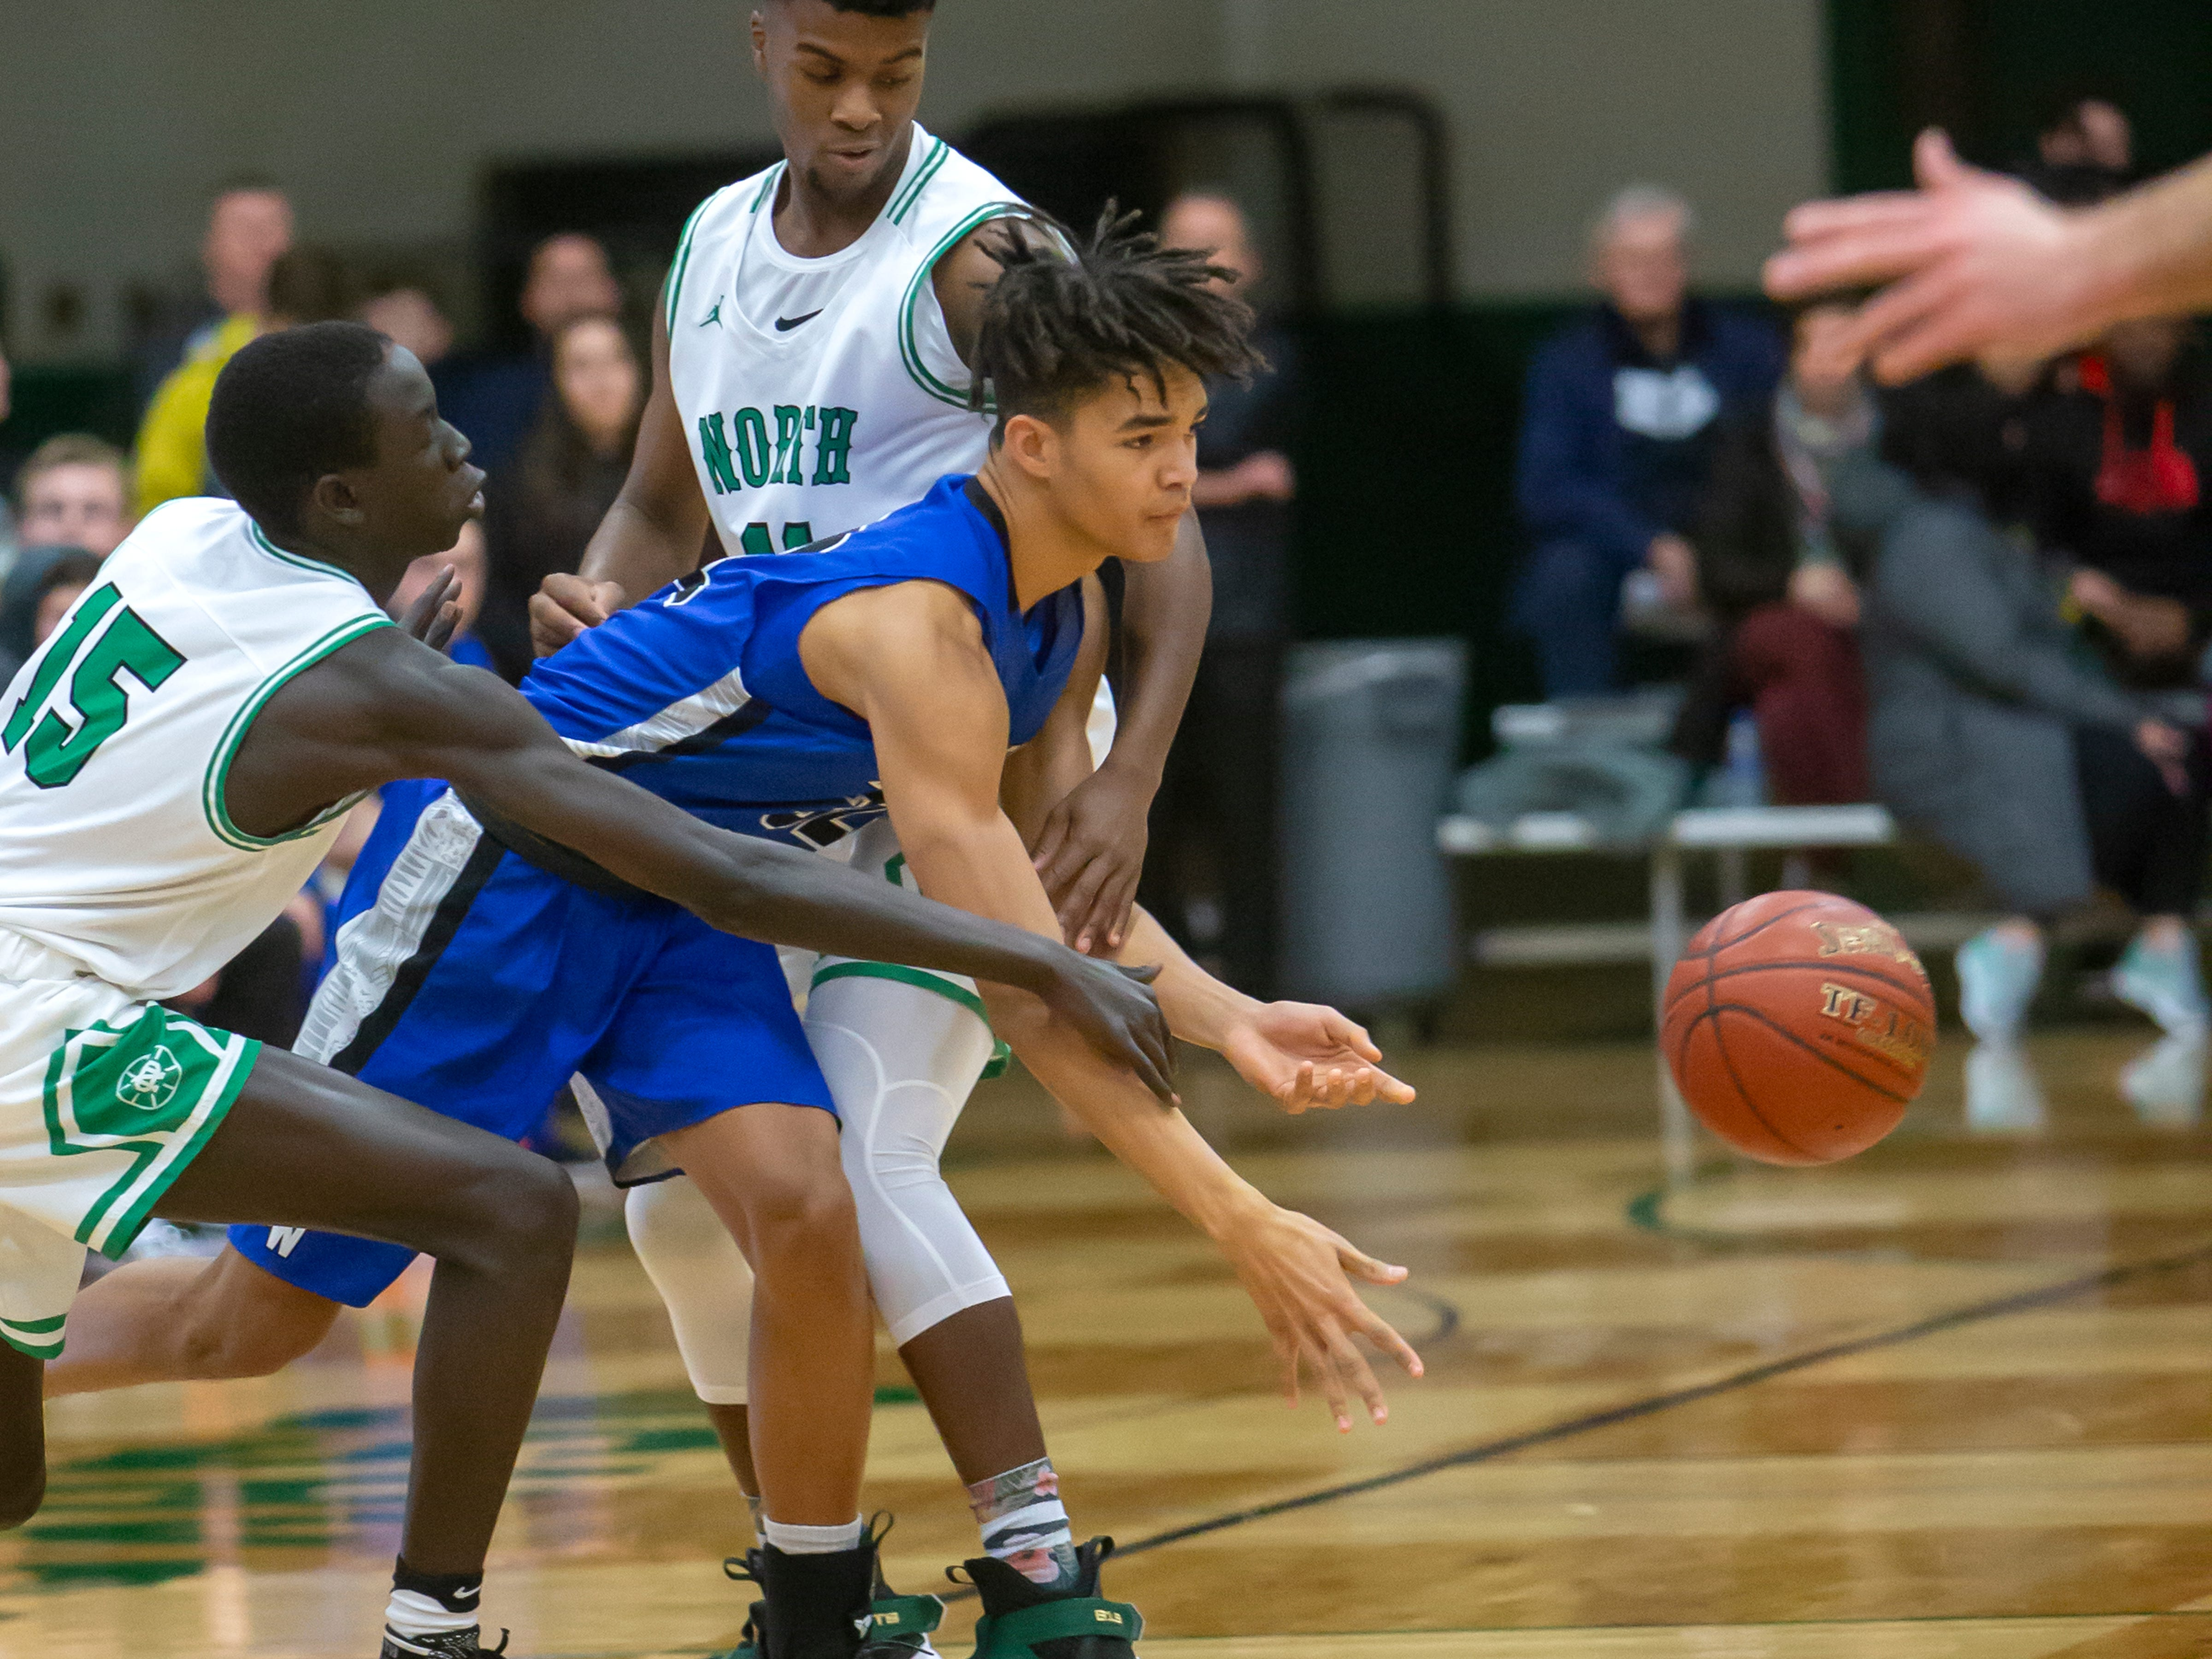 Oshkosh North's Garang Deng and Abe Schiek hold back Oshkosh West's Jacquez Overstreet going after the ball at the Oshkosh North High School on Tuesday, Jan. 8, 2019.